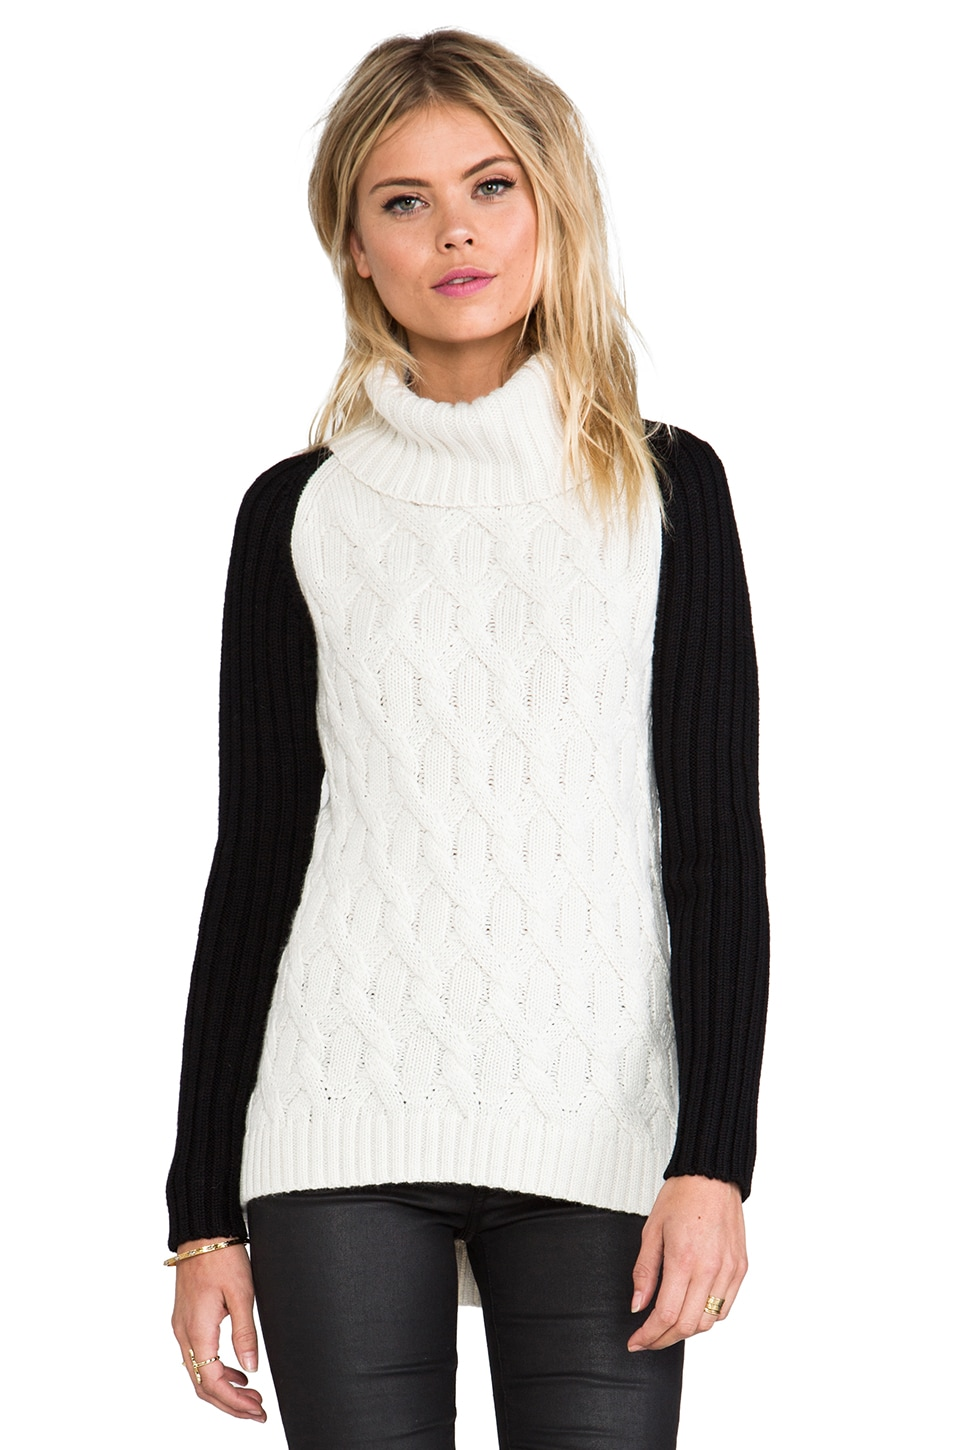 Trina Turk Darnell Sweater in Ivory